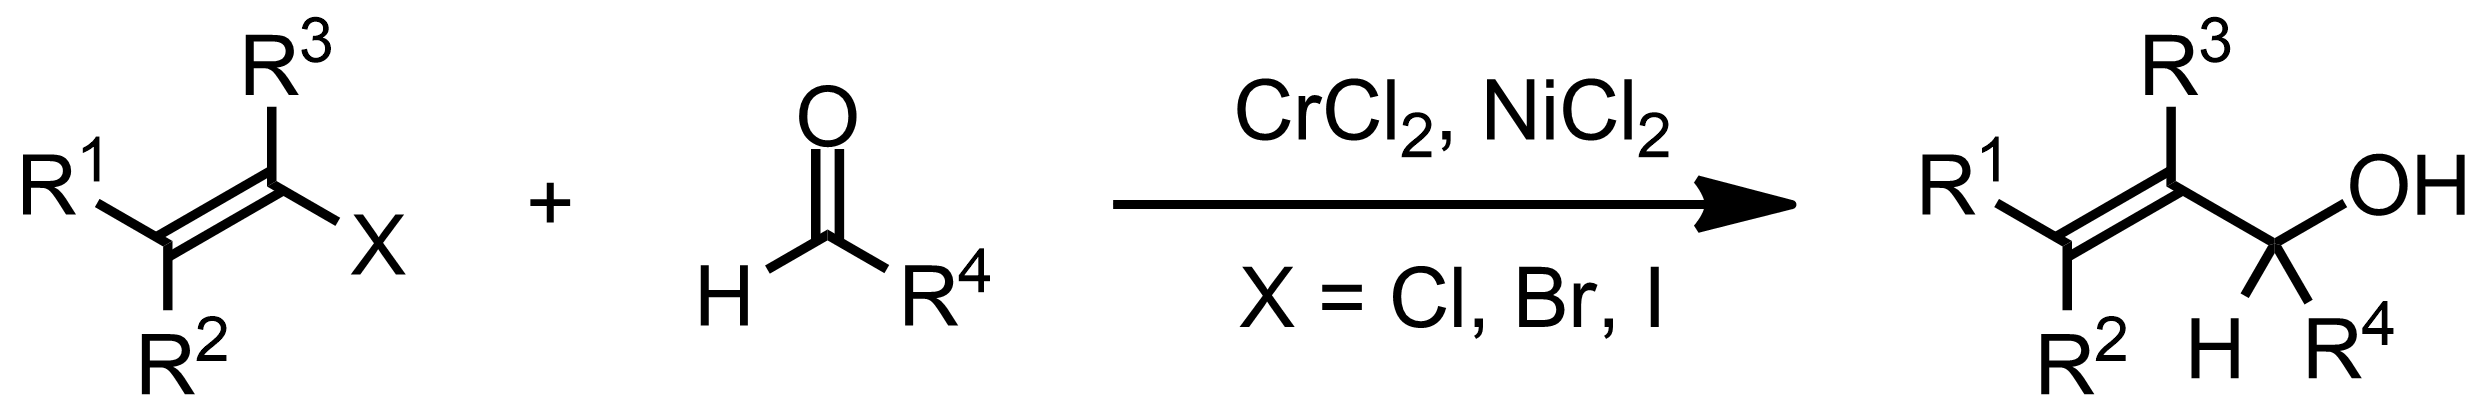 Schematic representation of the Nozaki-Hiyama-Kishi Reaction.